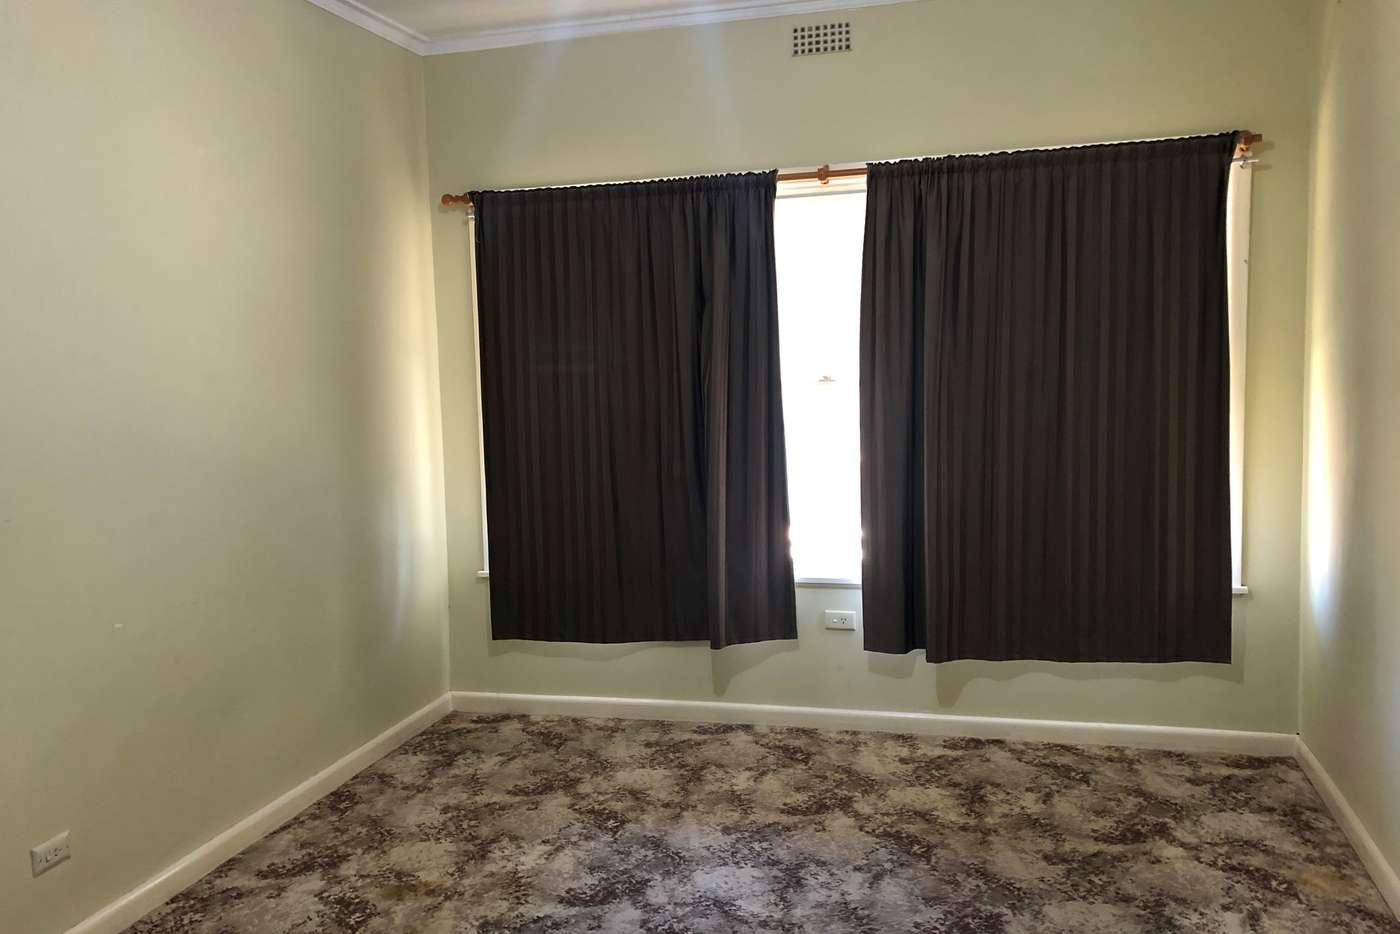 Seventh view of Homely house listing, 17 Leonora Street, Robinvale VIC 3549